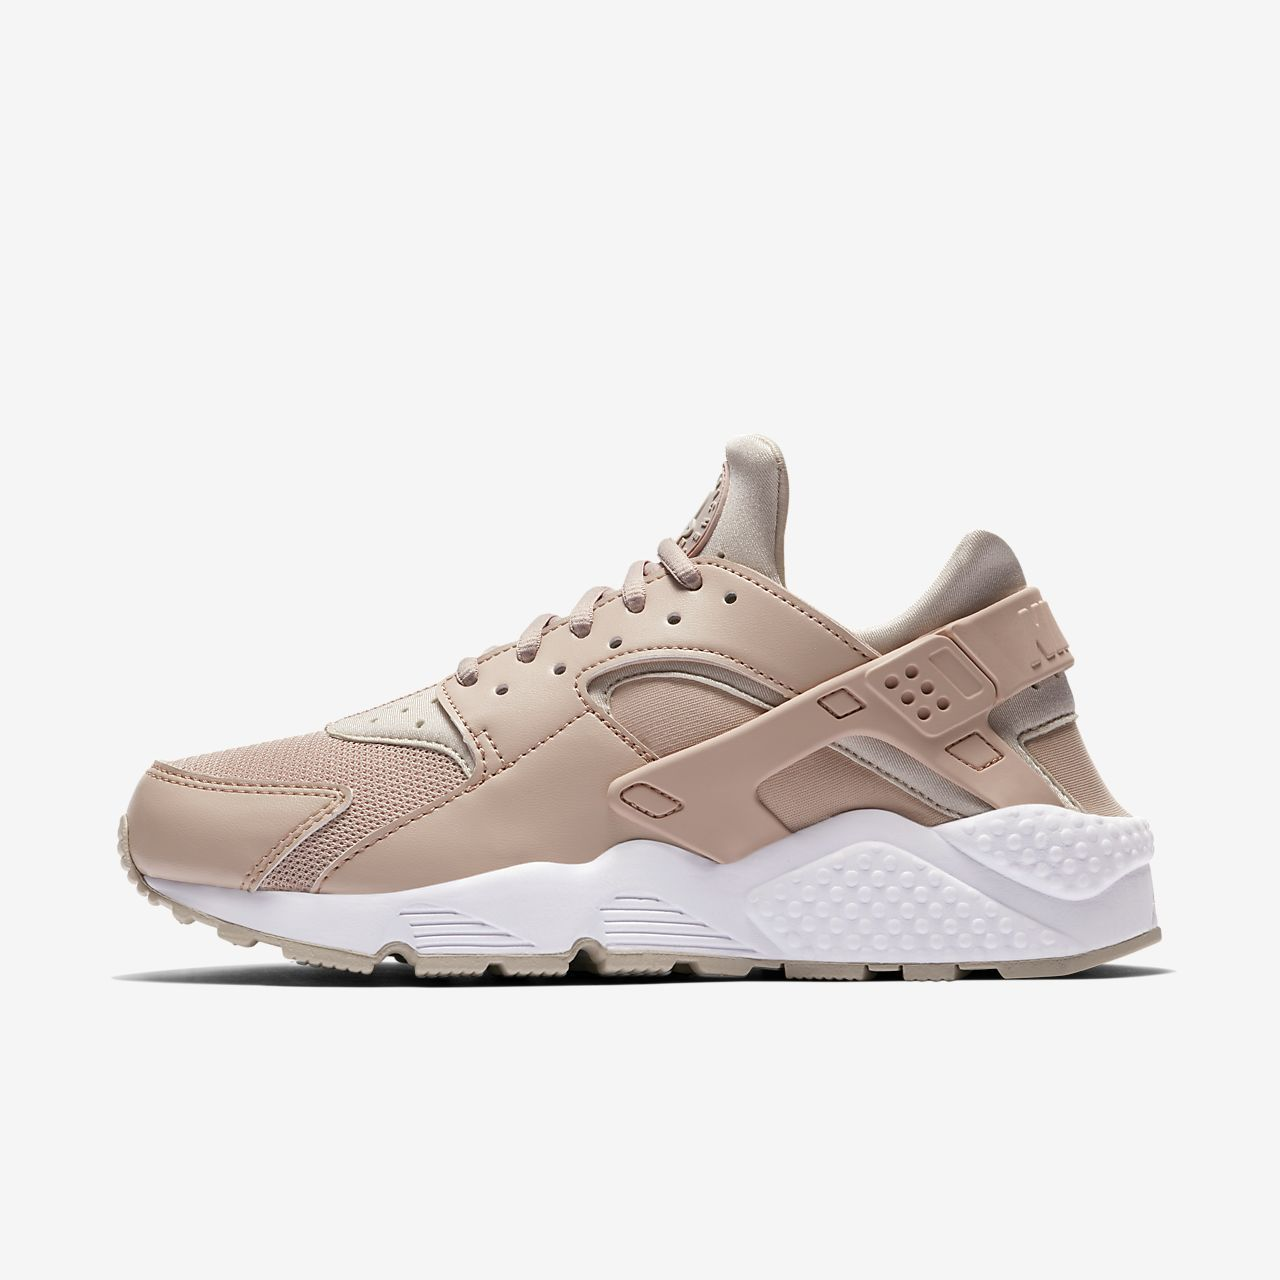 best service 6d014 1a983 Nike Air Huarache Women s Shoe Particle Beige White Desert Sand